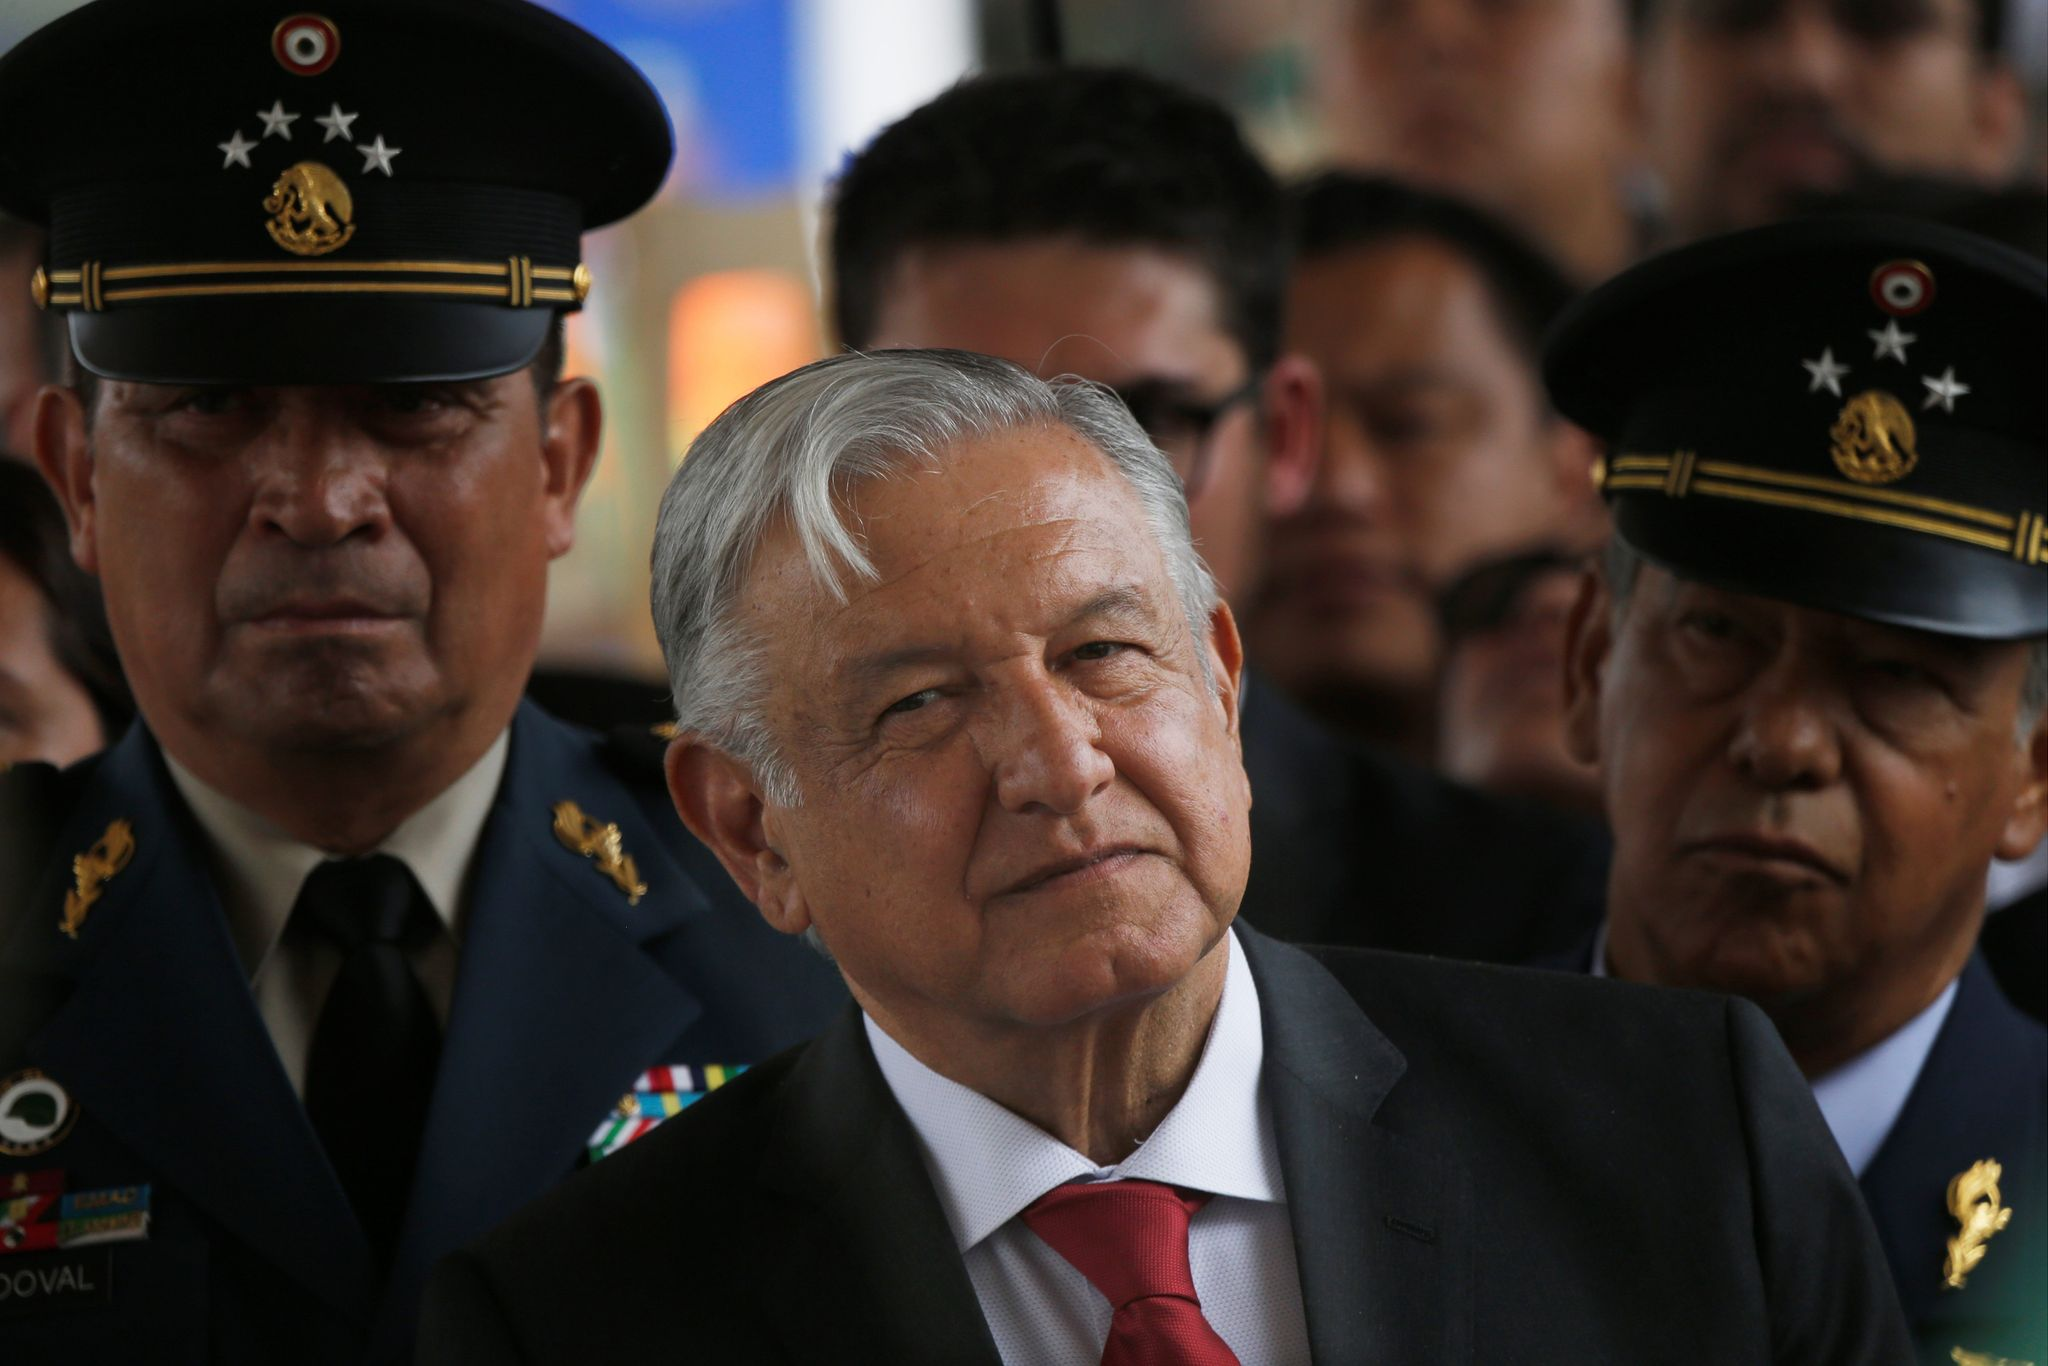 Outspoken Mexican president takes surprising approach to Trump